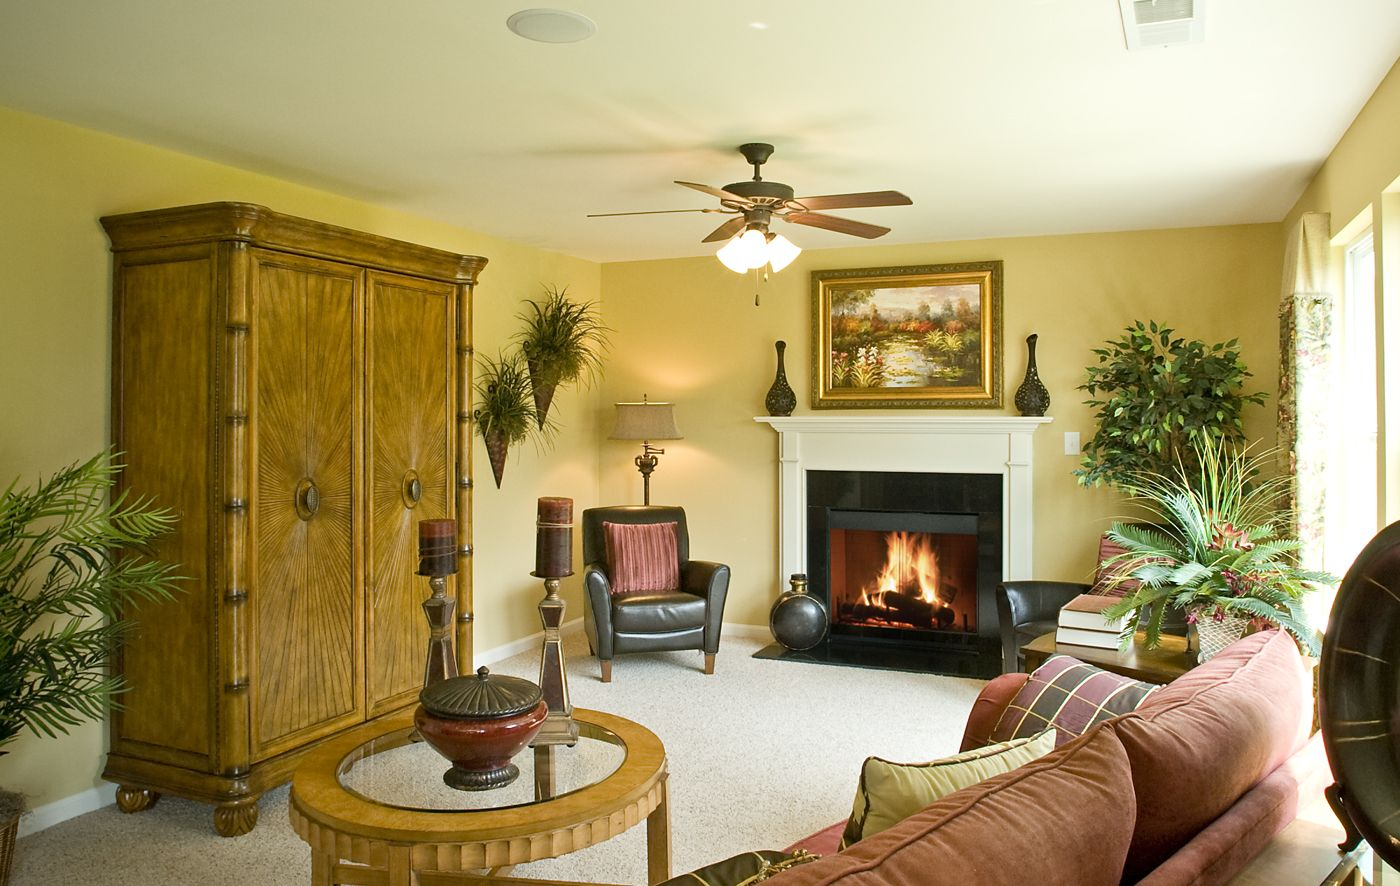 Model home interior decorating amazing with images of also rh za pinterest